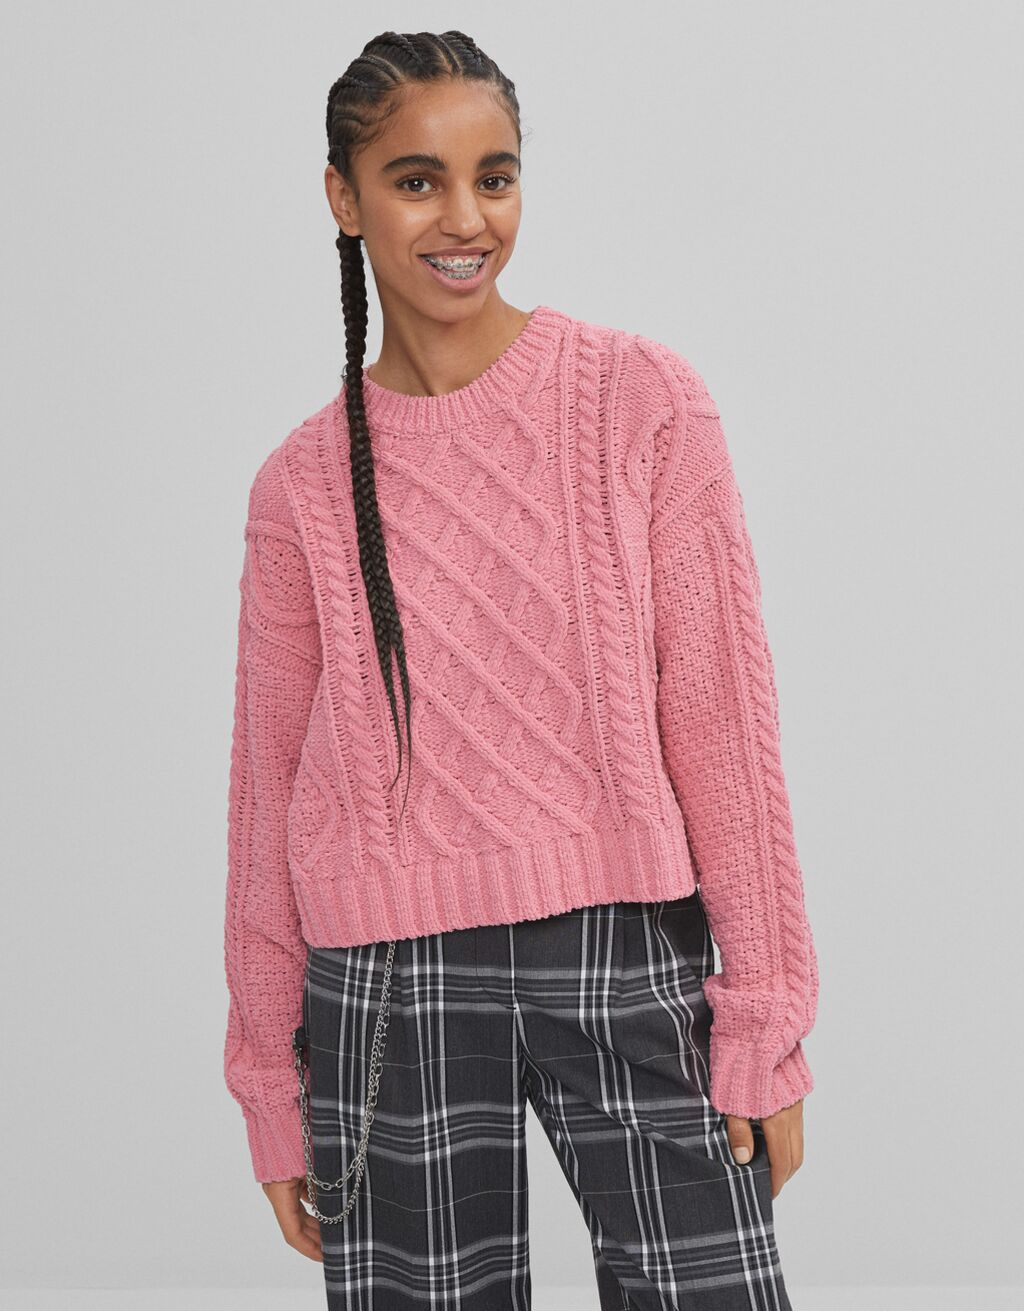 Cable-knit chenille sweater - Knitwear and sweatshirts - Woman